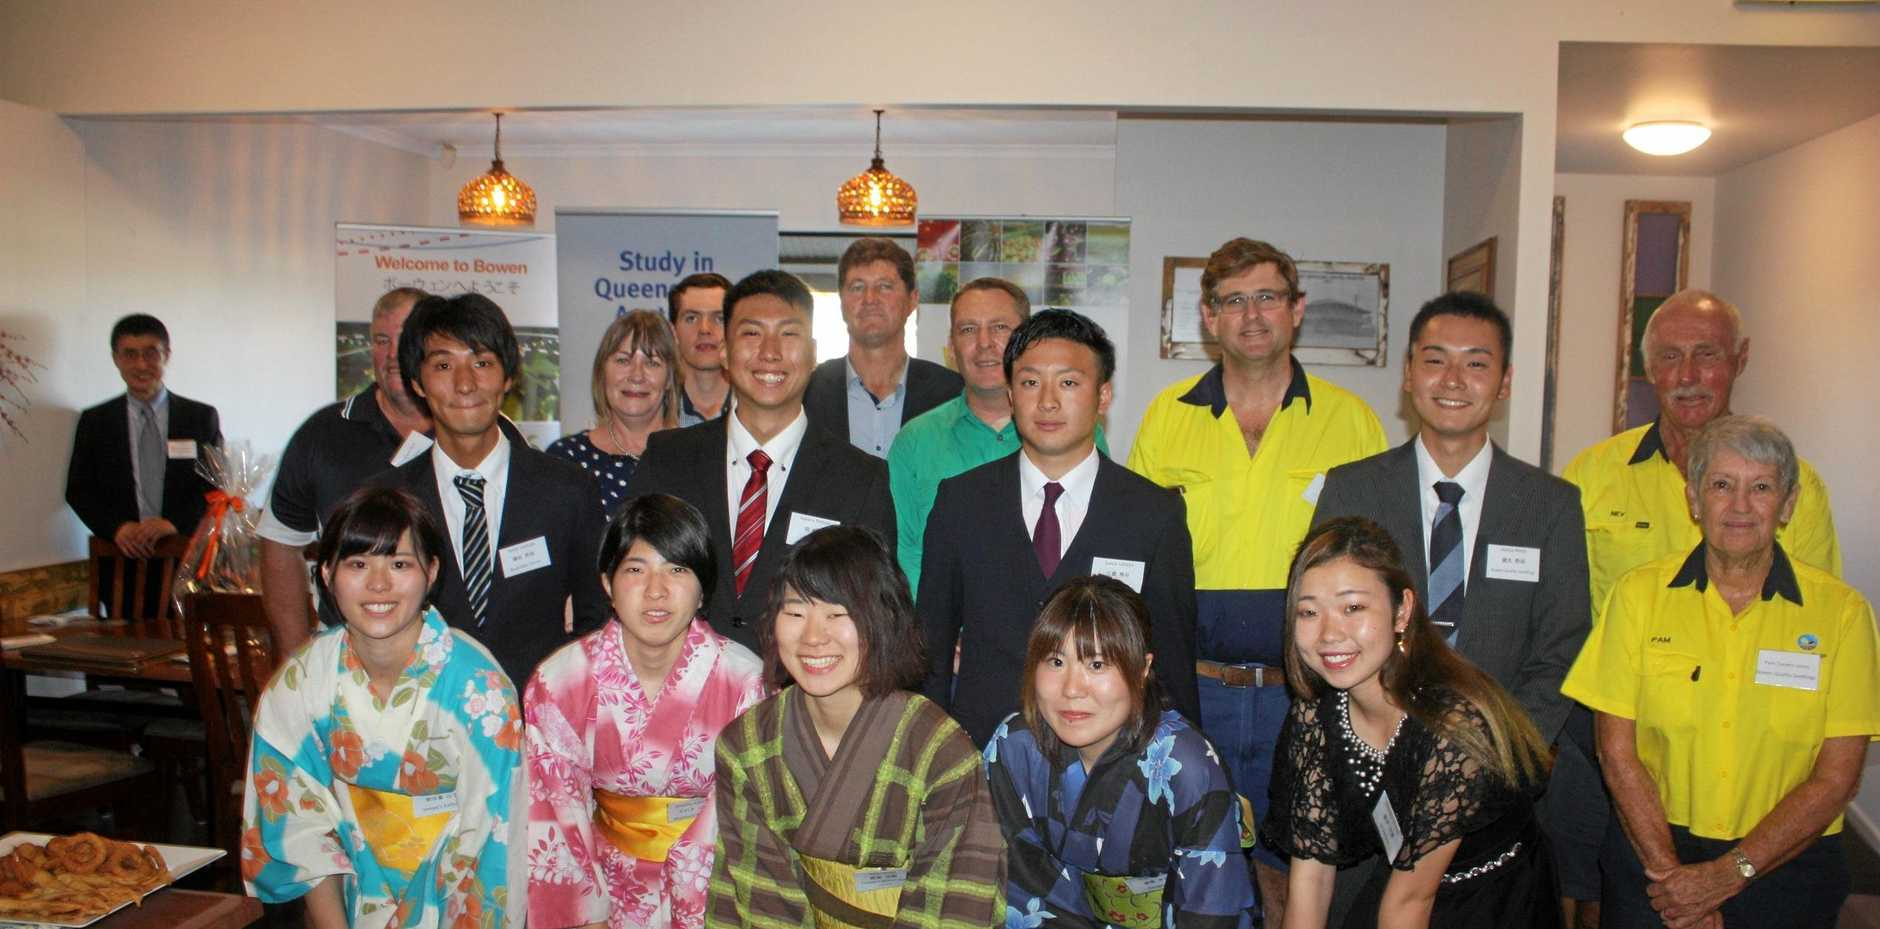 BOWEN E YOUKOSO: Japanese students have arrived in Bowen to take part in a 12-month training program in agriculture.